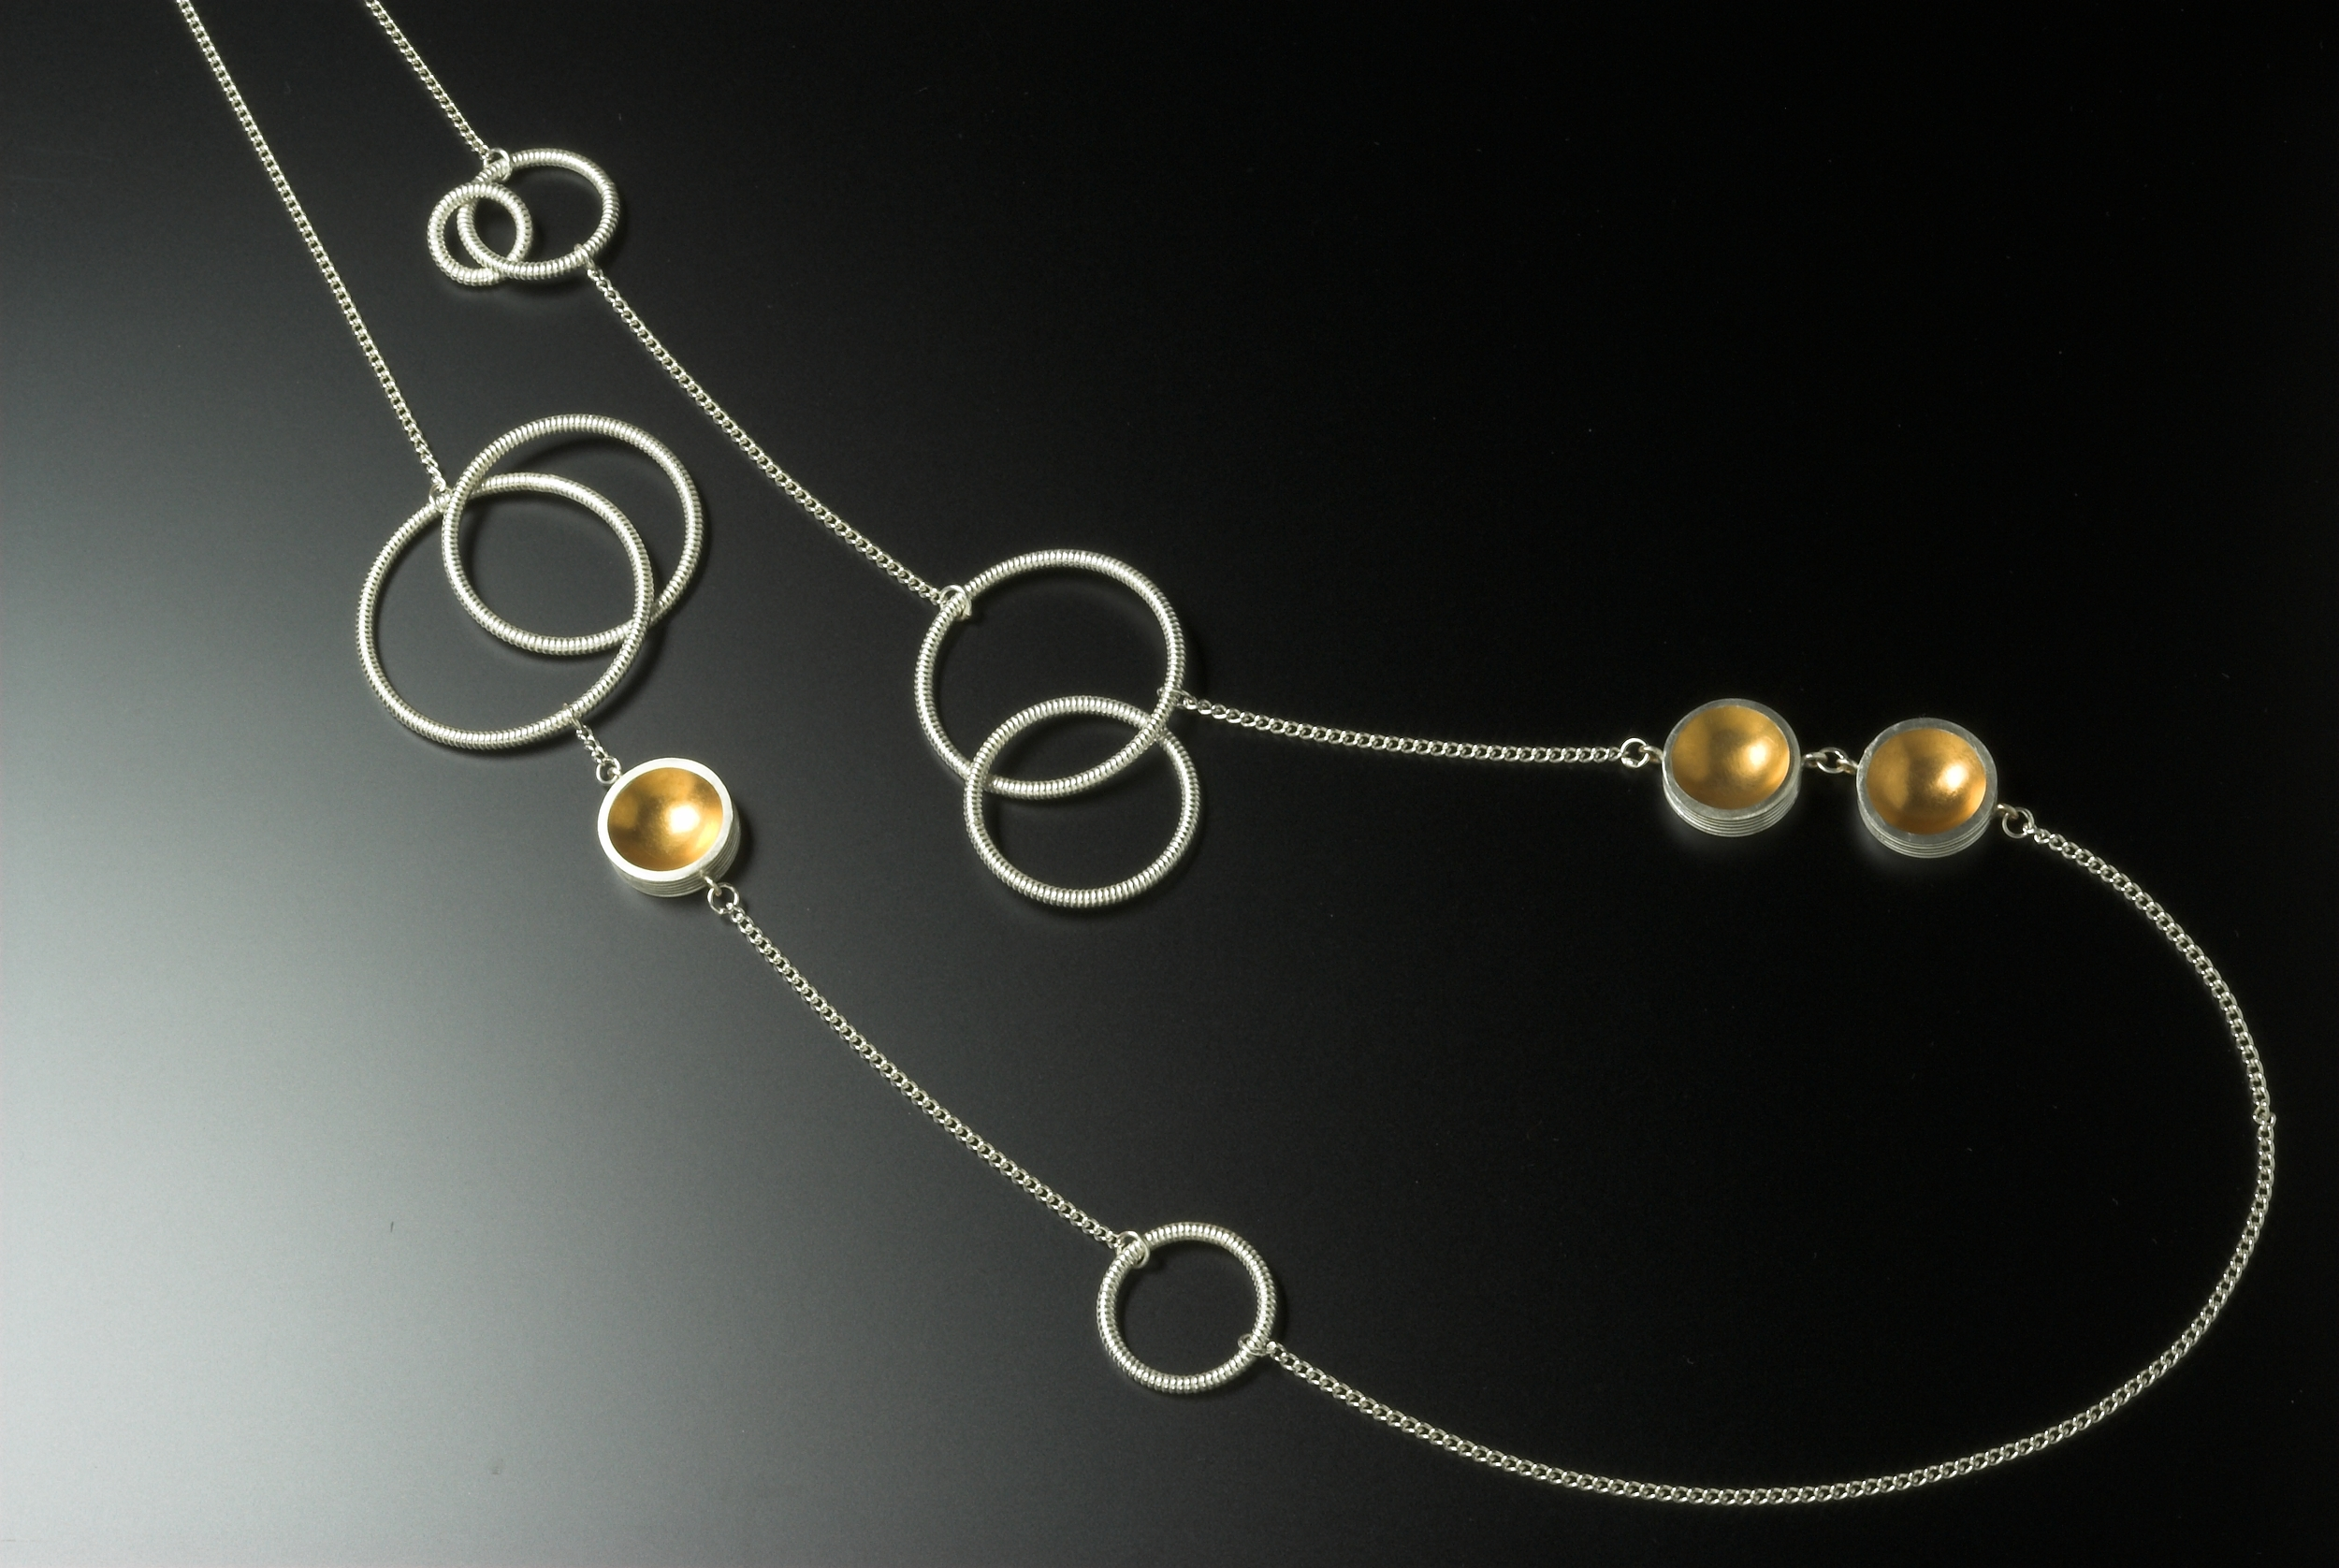 Silver and gold plate necklace £420 @100cm long